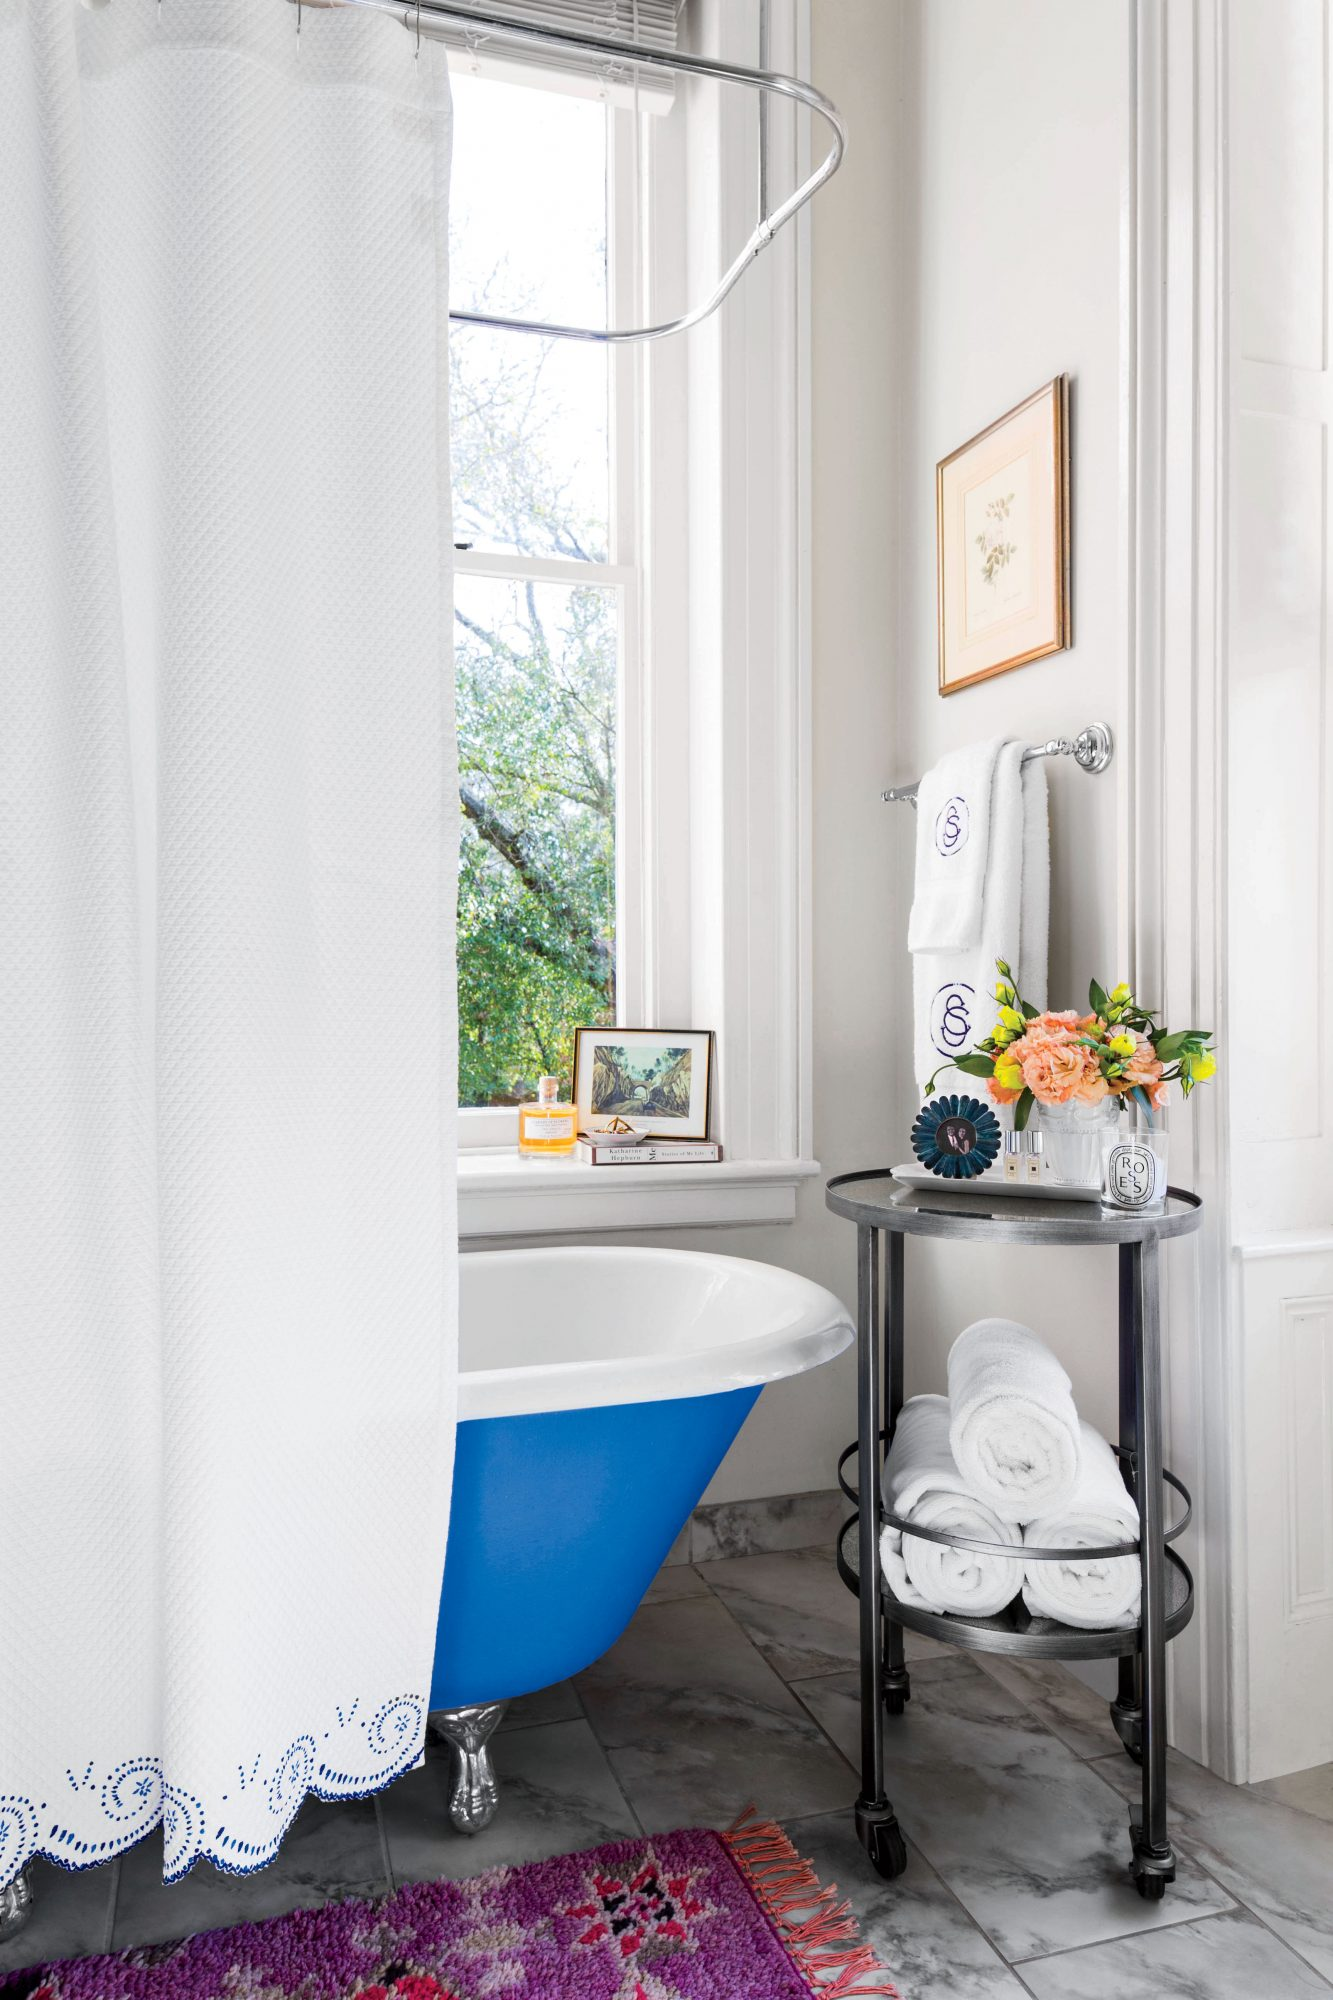 the one thing i wish i knew before buying an antique clawfoot tubblue clawfoot tub